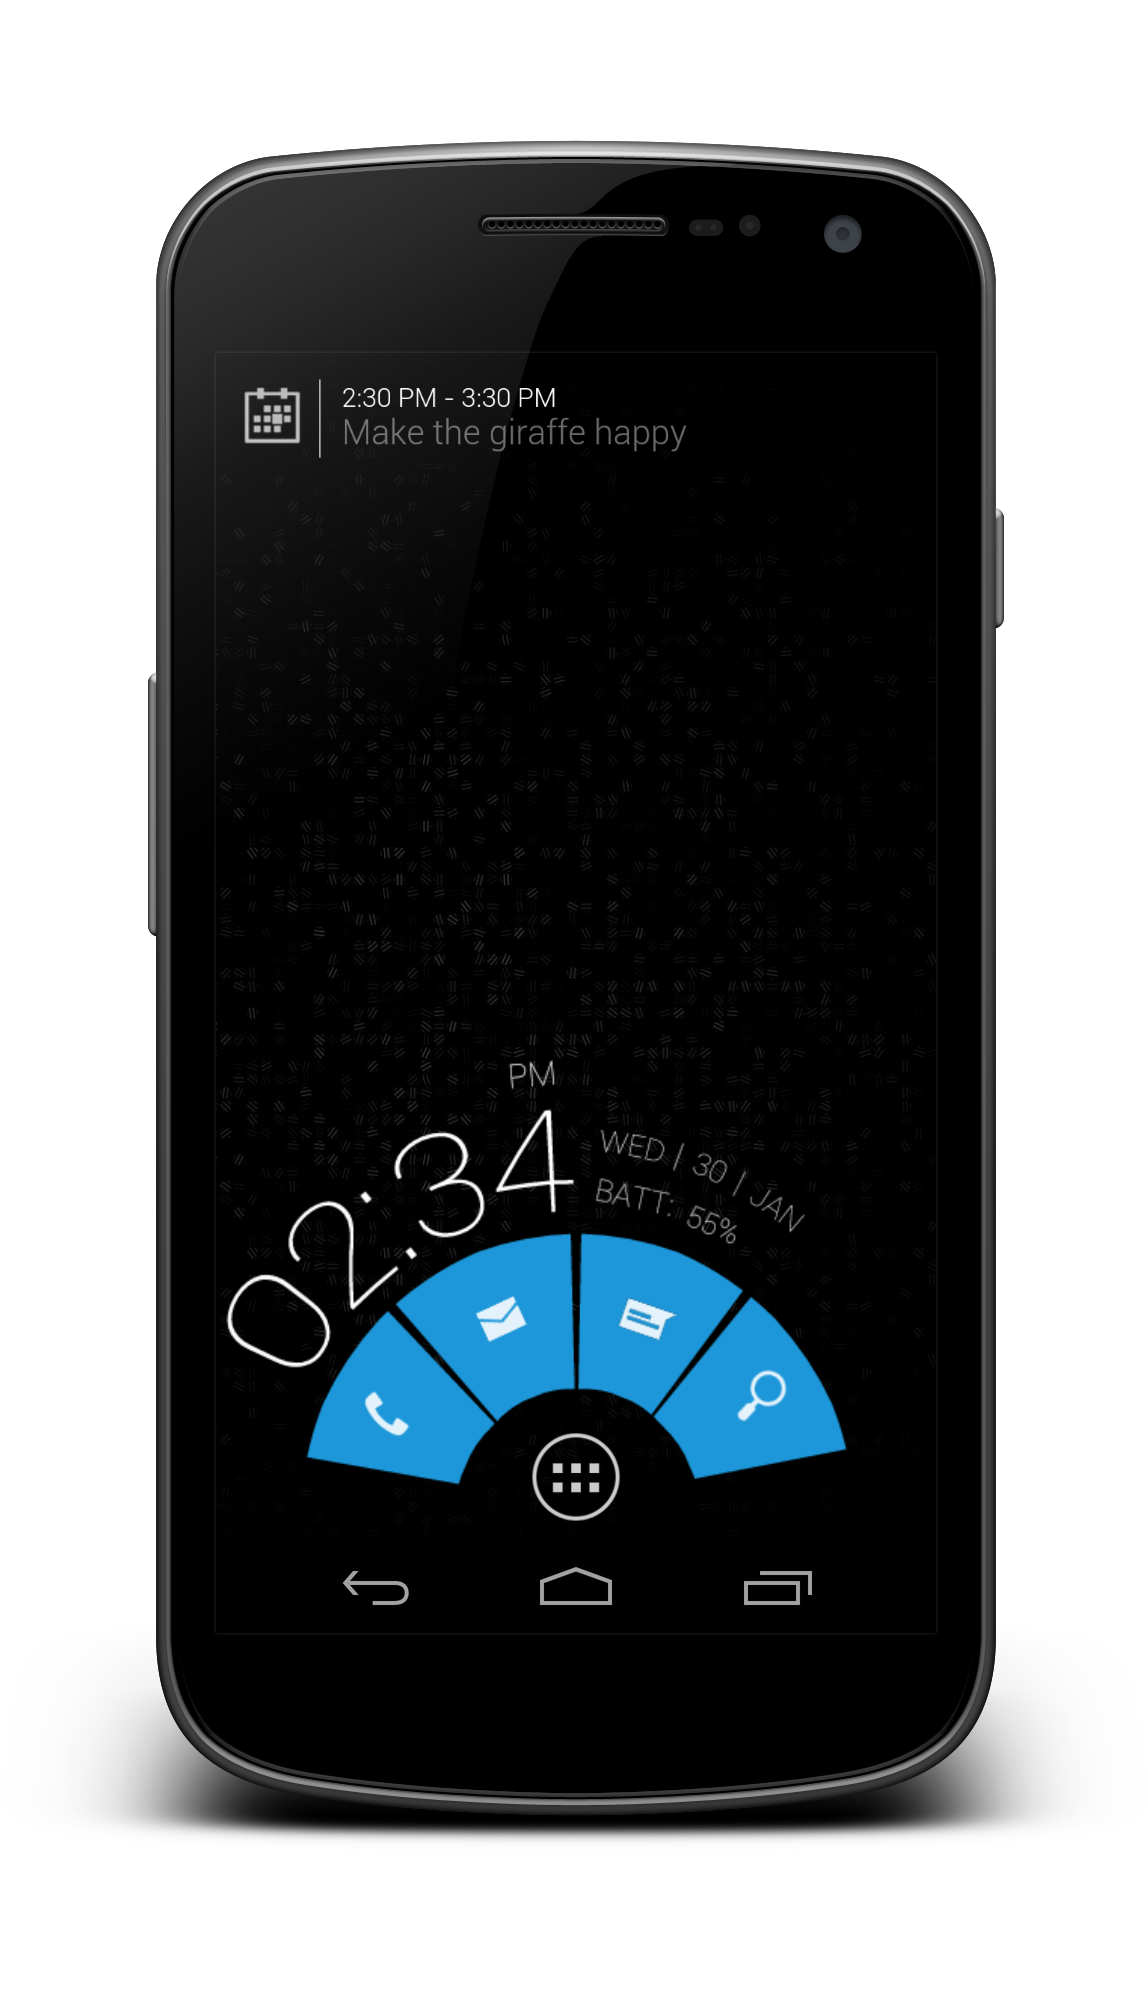 UCCW of a Blueberry Pie Android Homescreen by Fulgore84